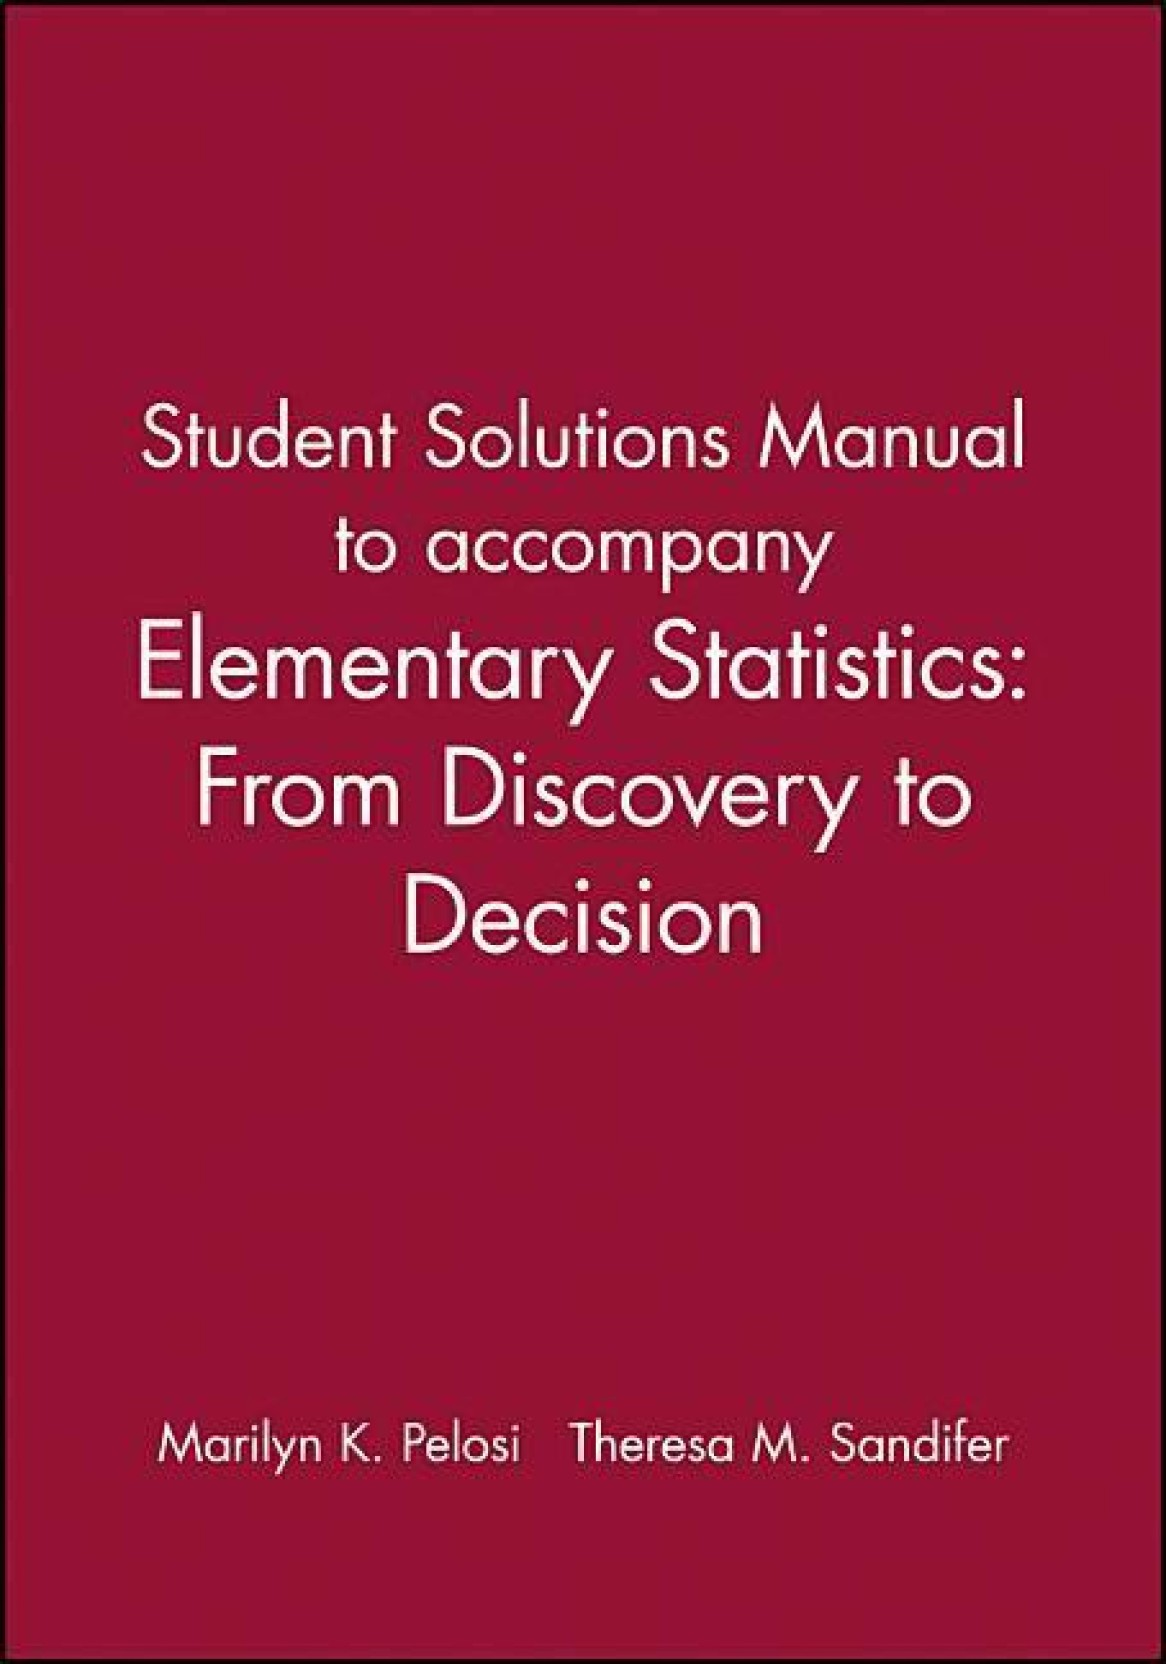 Elementary Statistics, Student Solutions Manual: From Discovery to  Decision. ADD TO CART